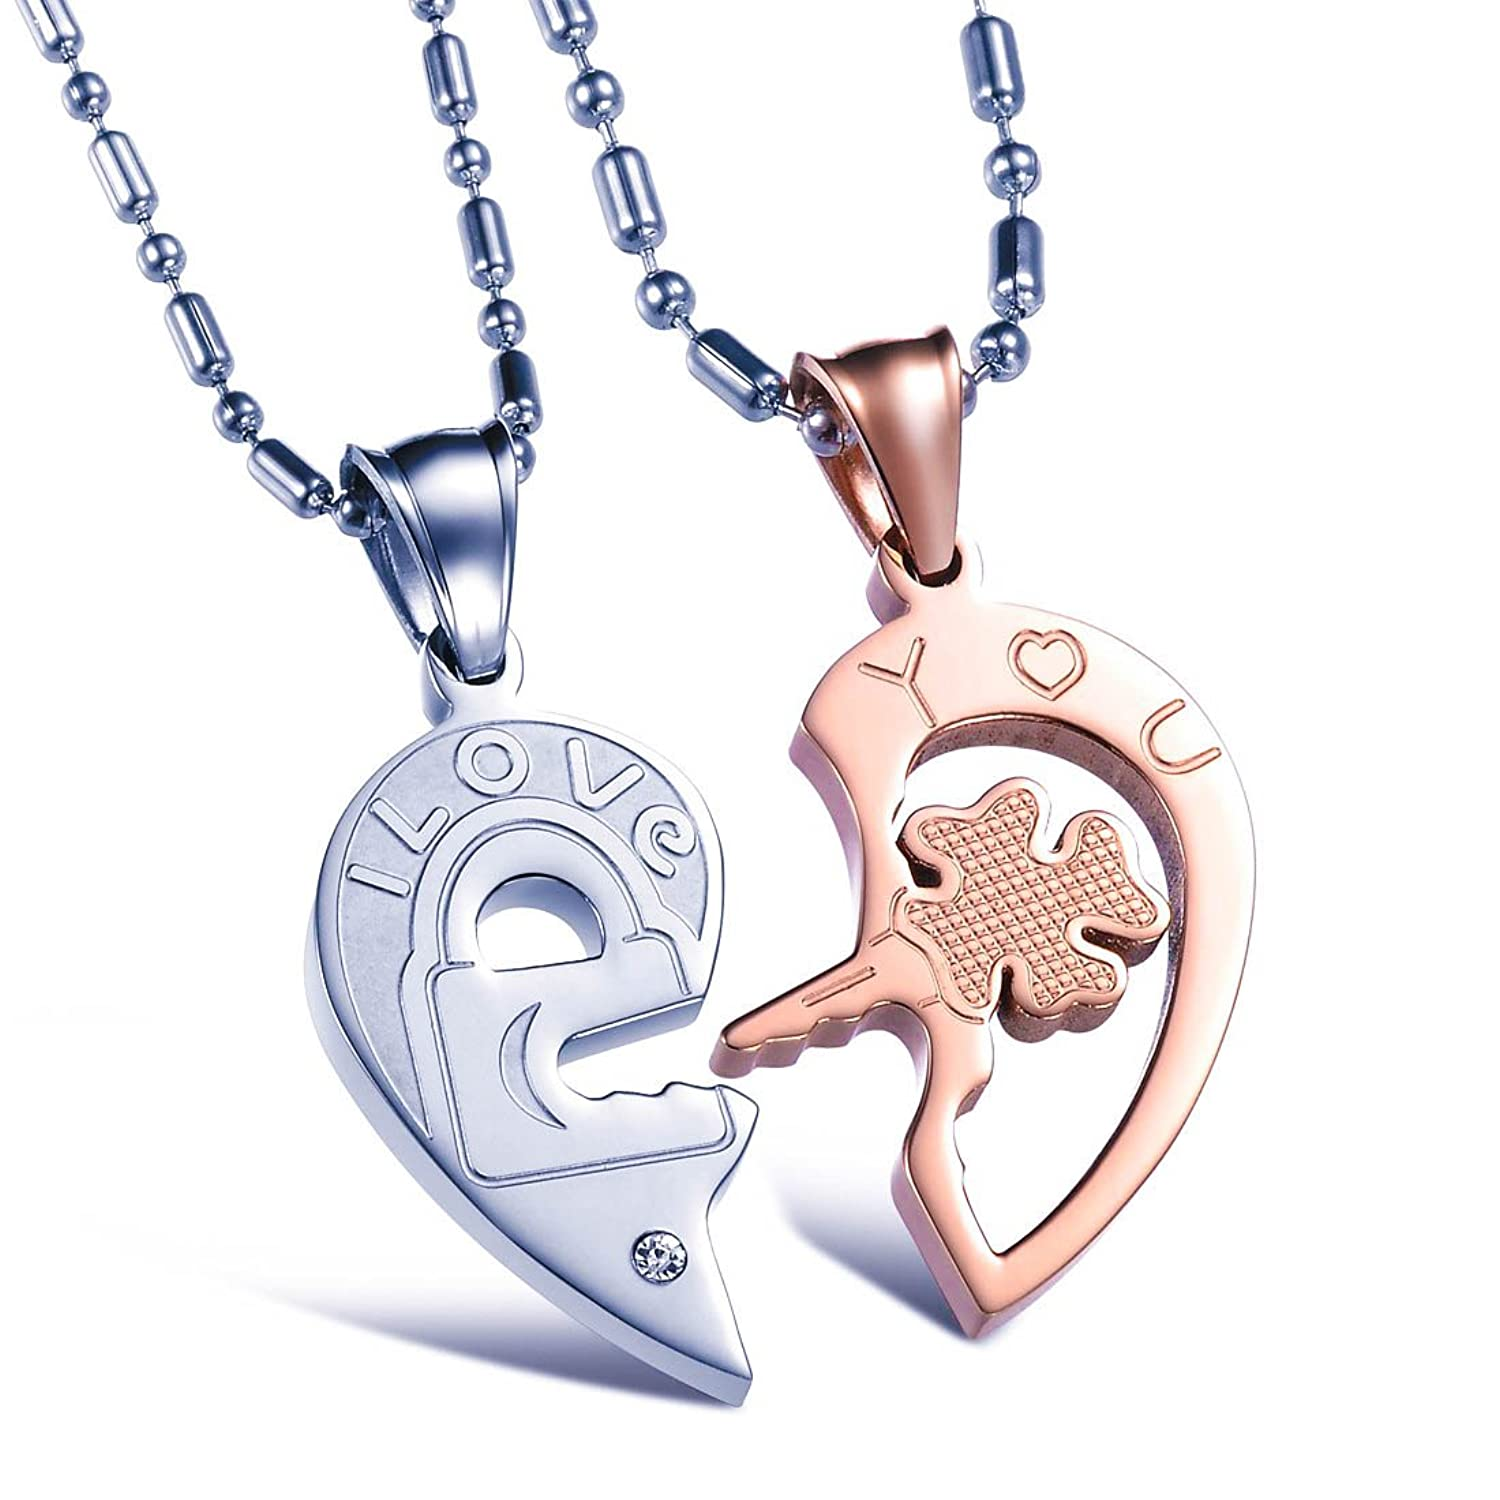 symbol music steel pendant products musical fashion armor geek jewelry titanium necklace notation couple